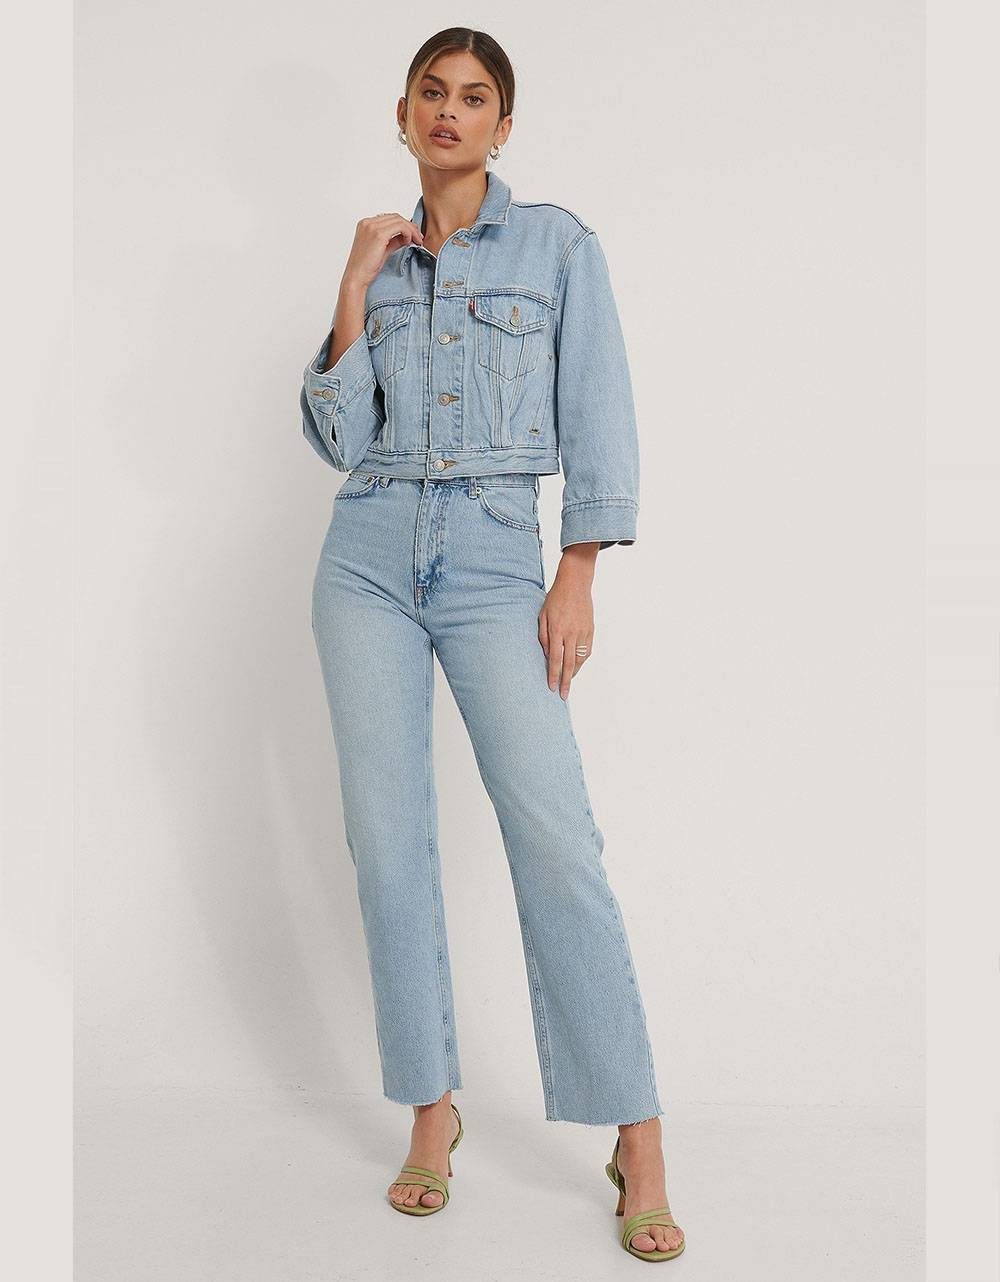 NA-KD straight high waist raw hem jeans - light blue NA-KD Jeans 56,56 €